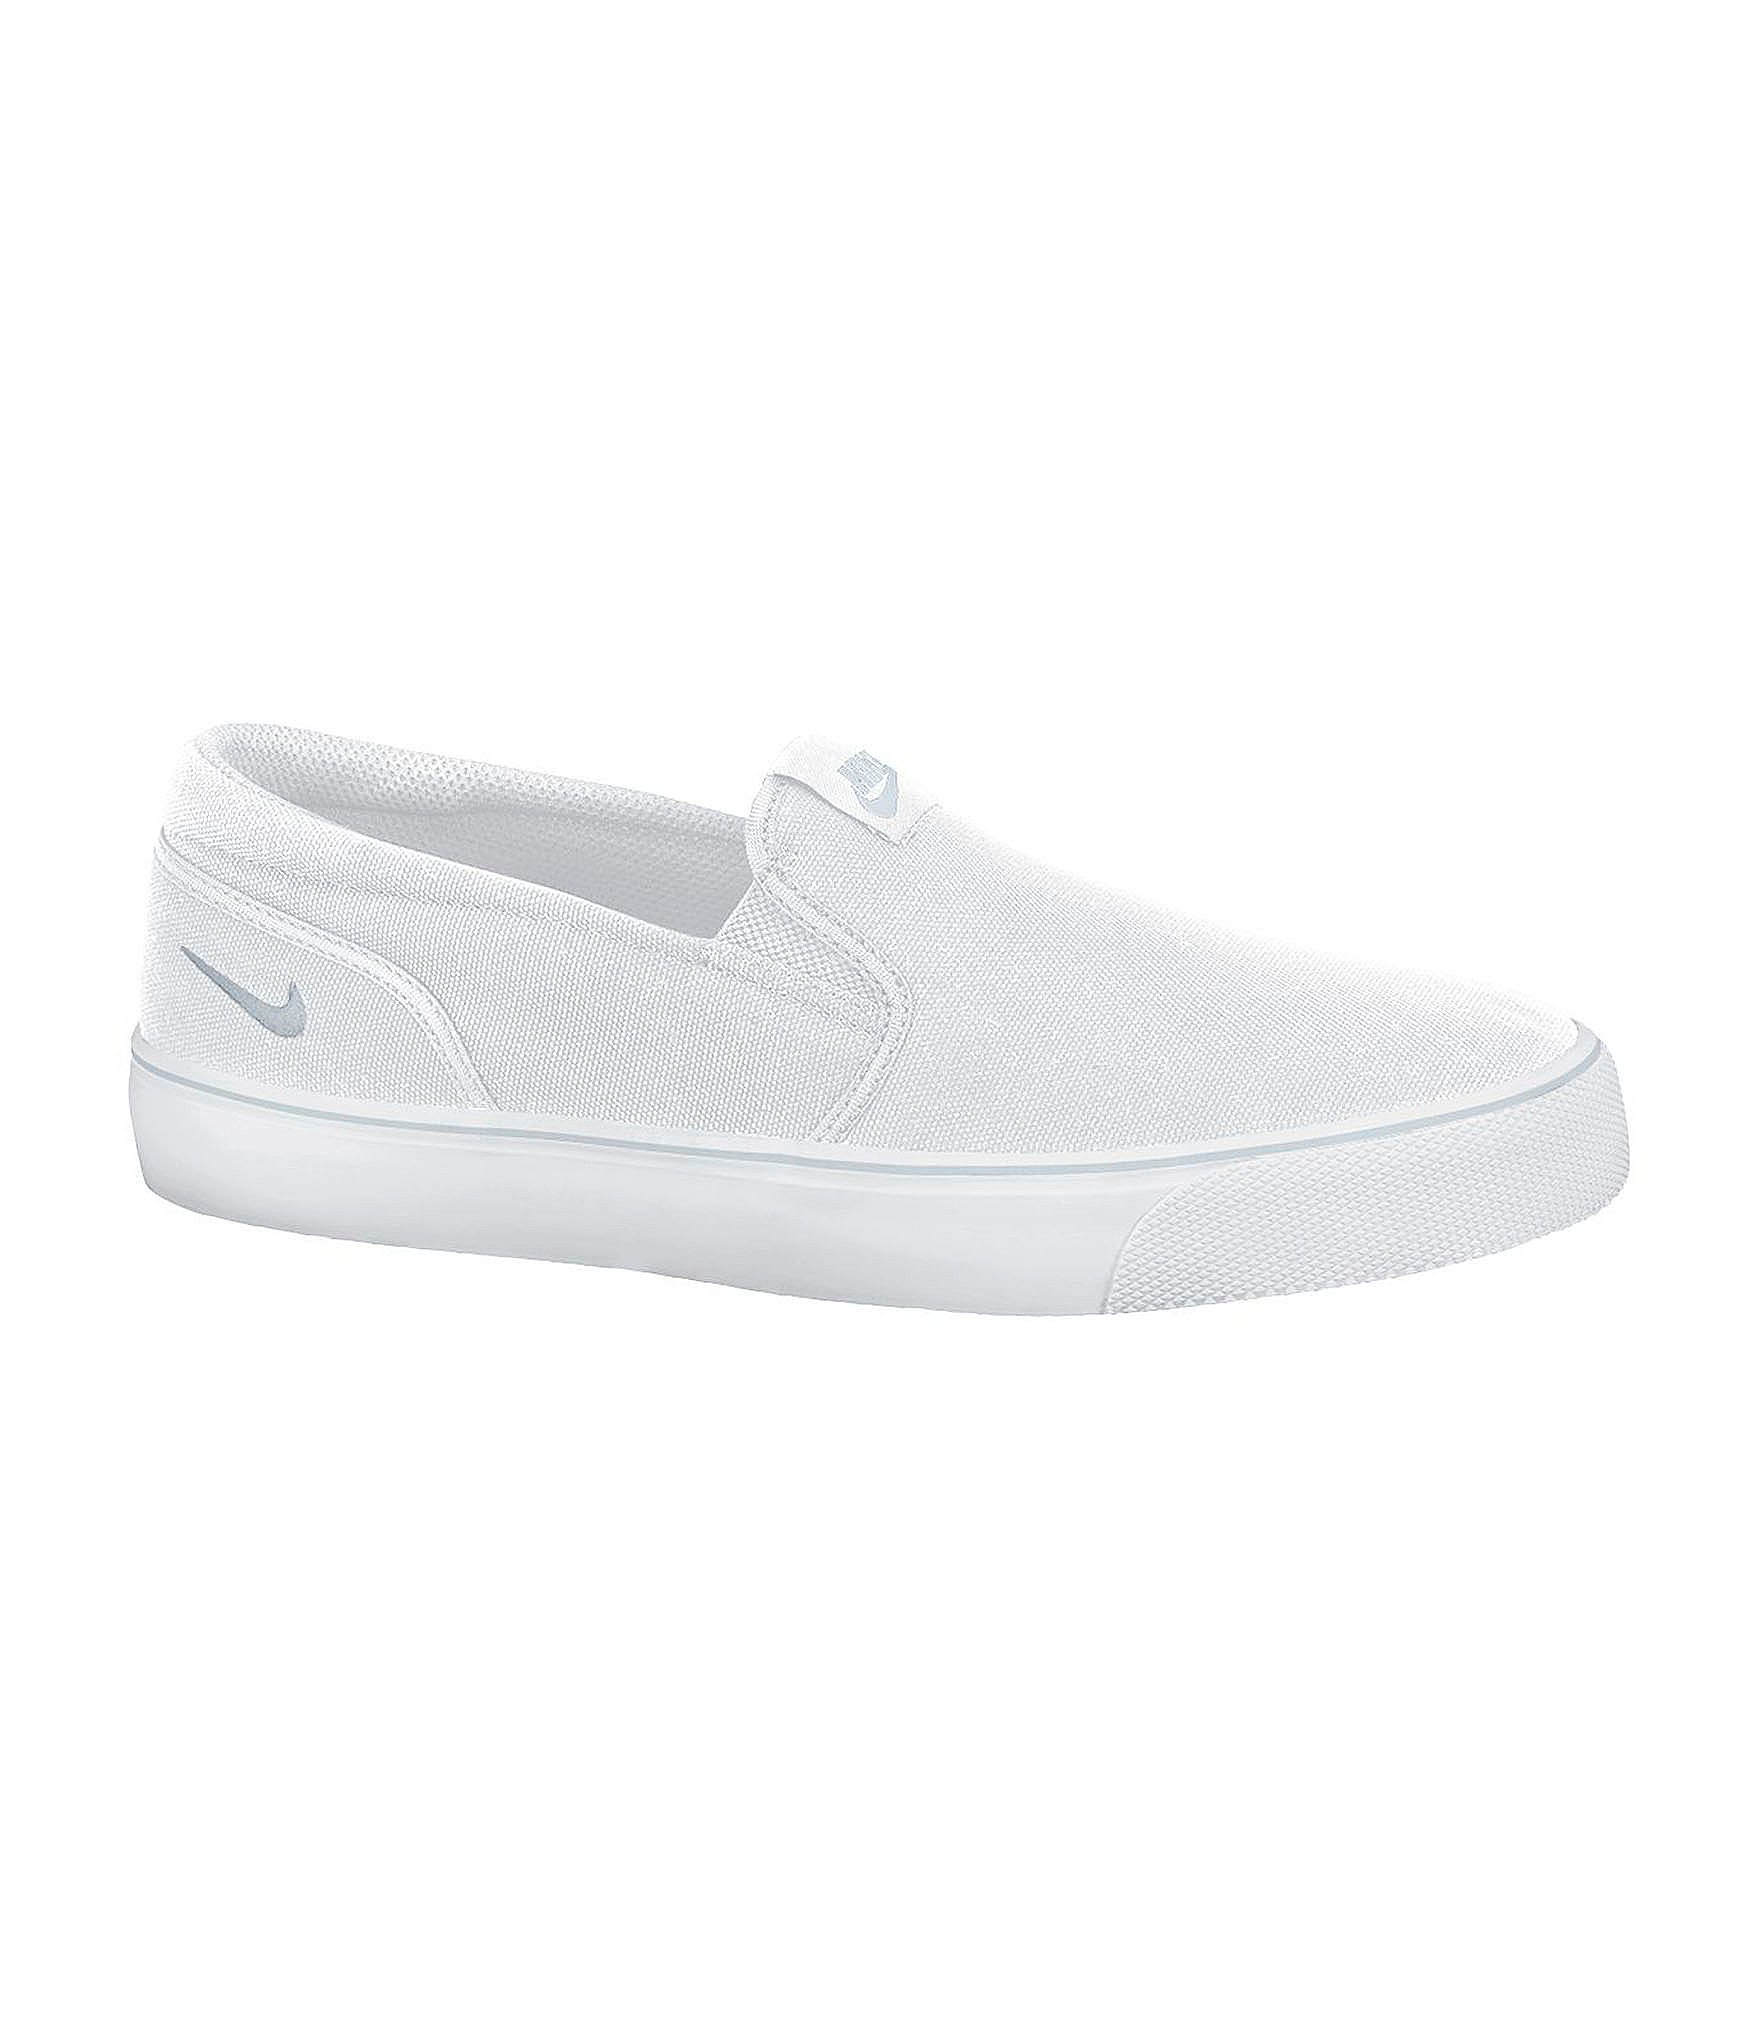 Walmart White Leather Shoes